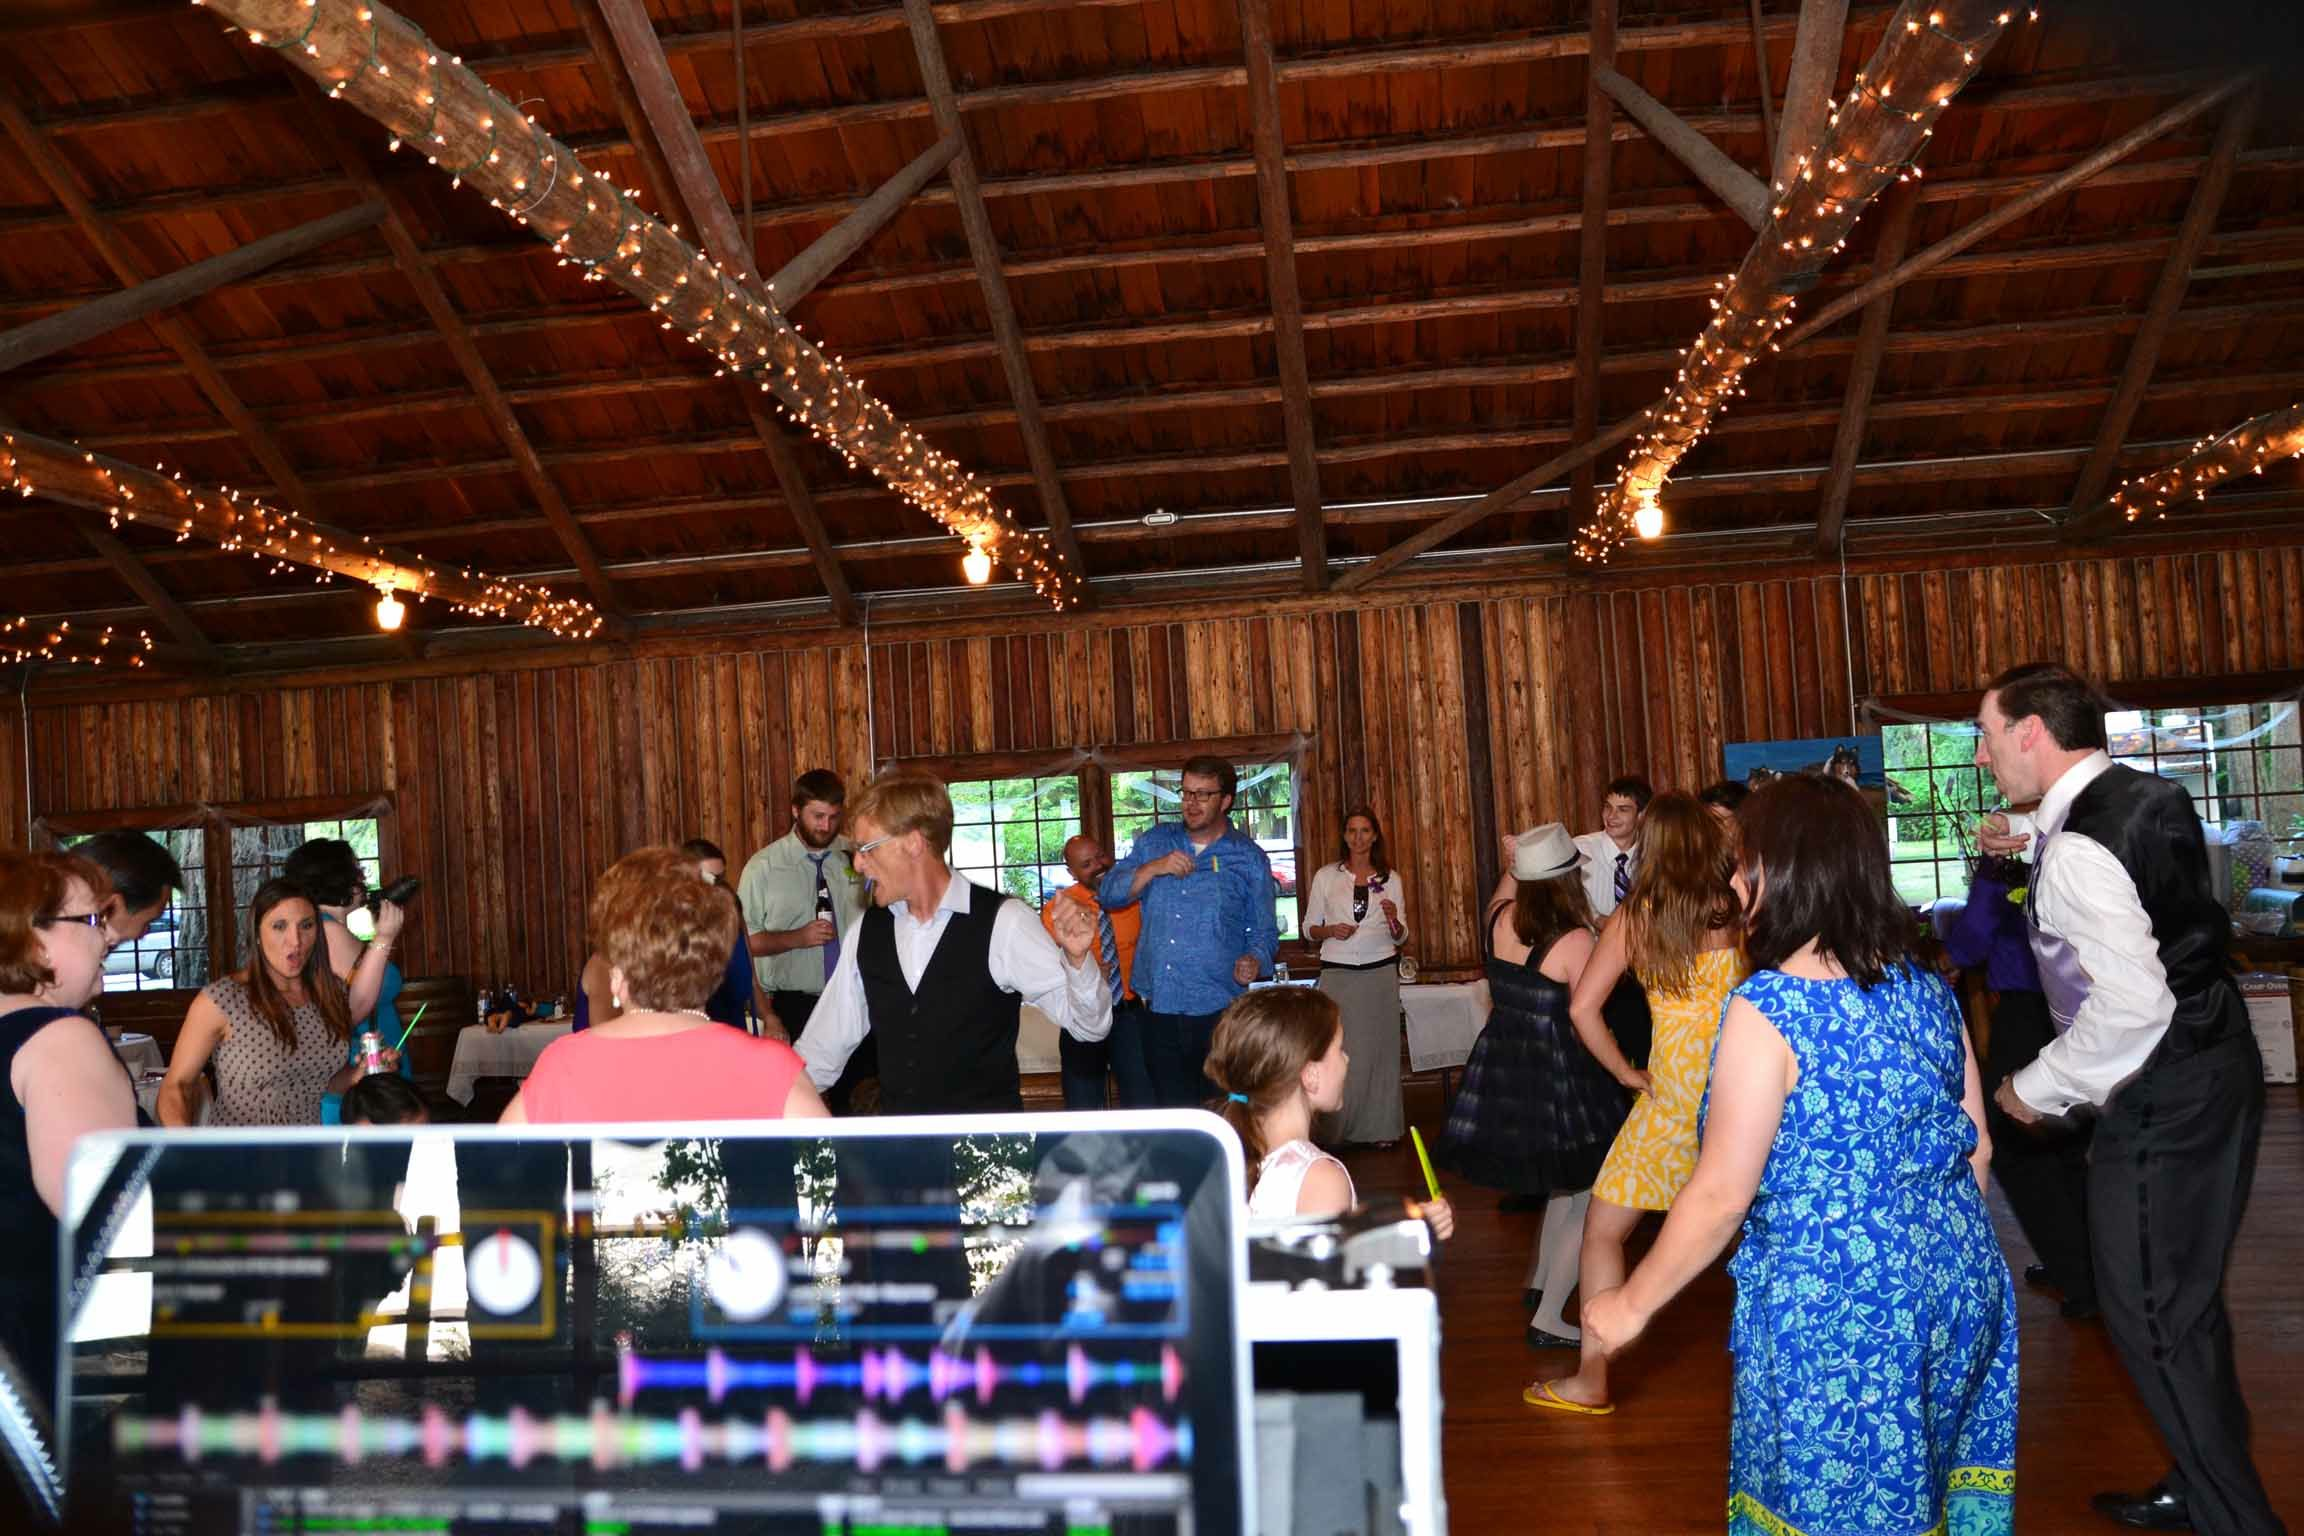 music masters djs a same sex wedding at kitsap memorial state park in poulsbo